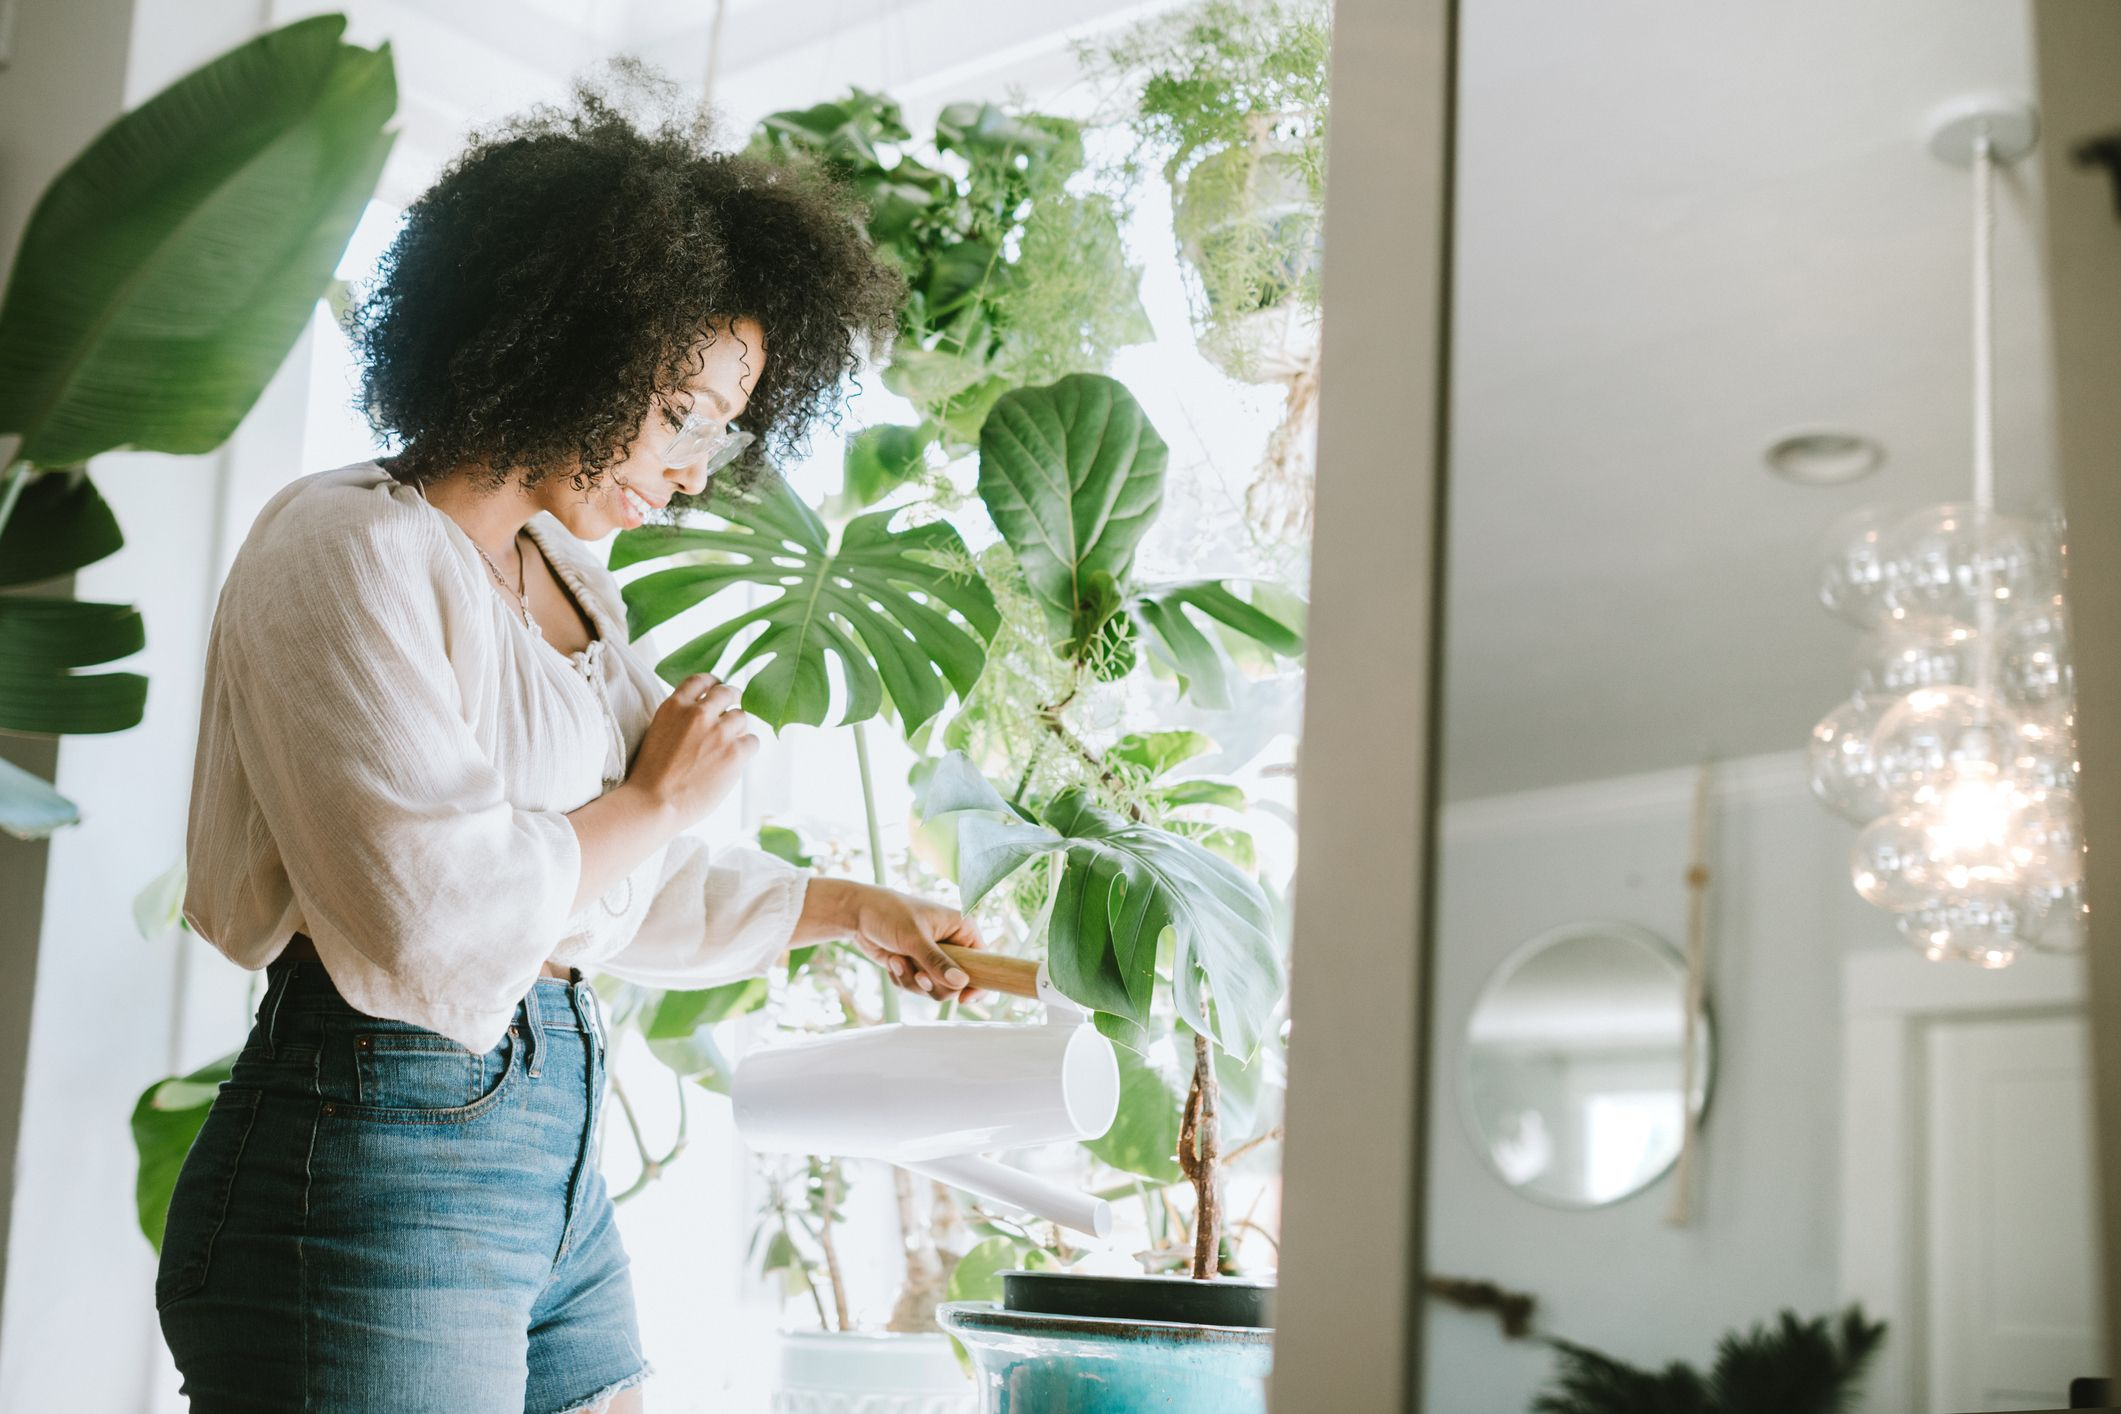 Urbanization, Design, Loneliness… What's Behind the Boom of Apartment Plants?